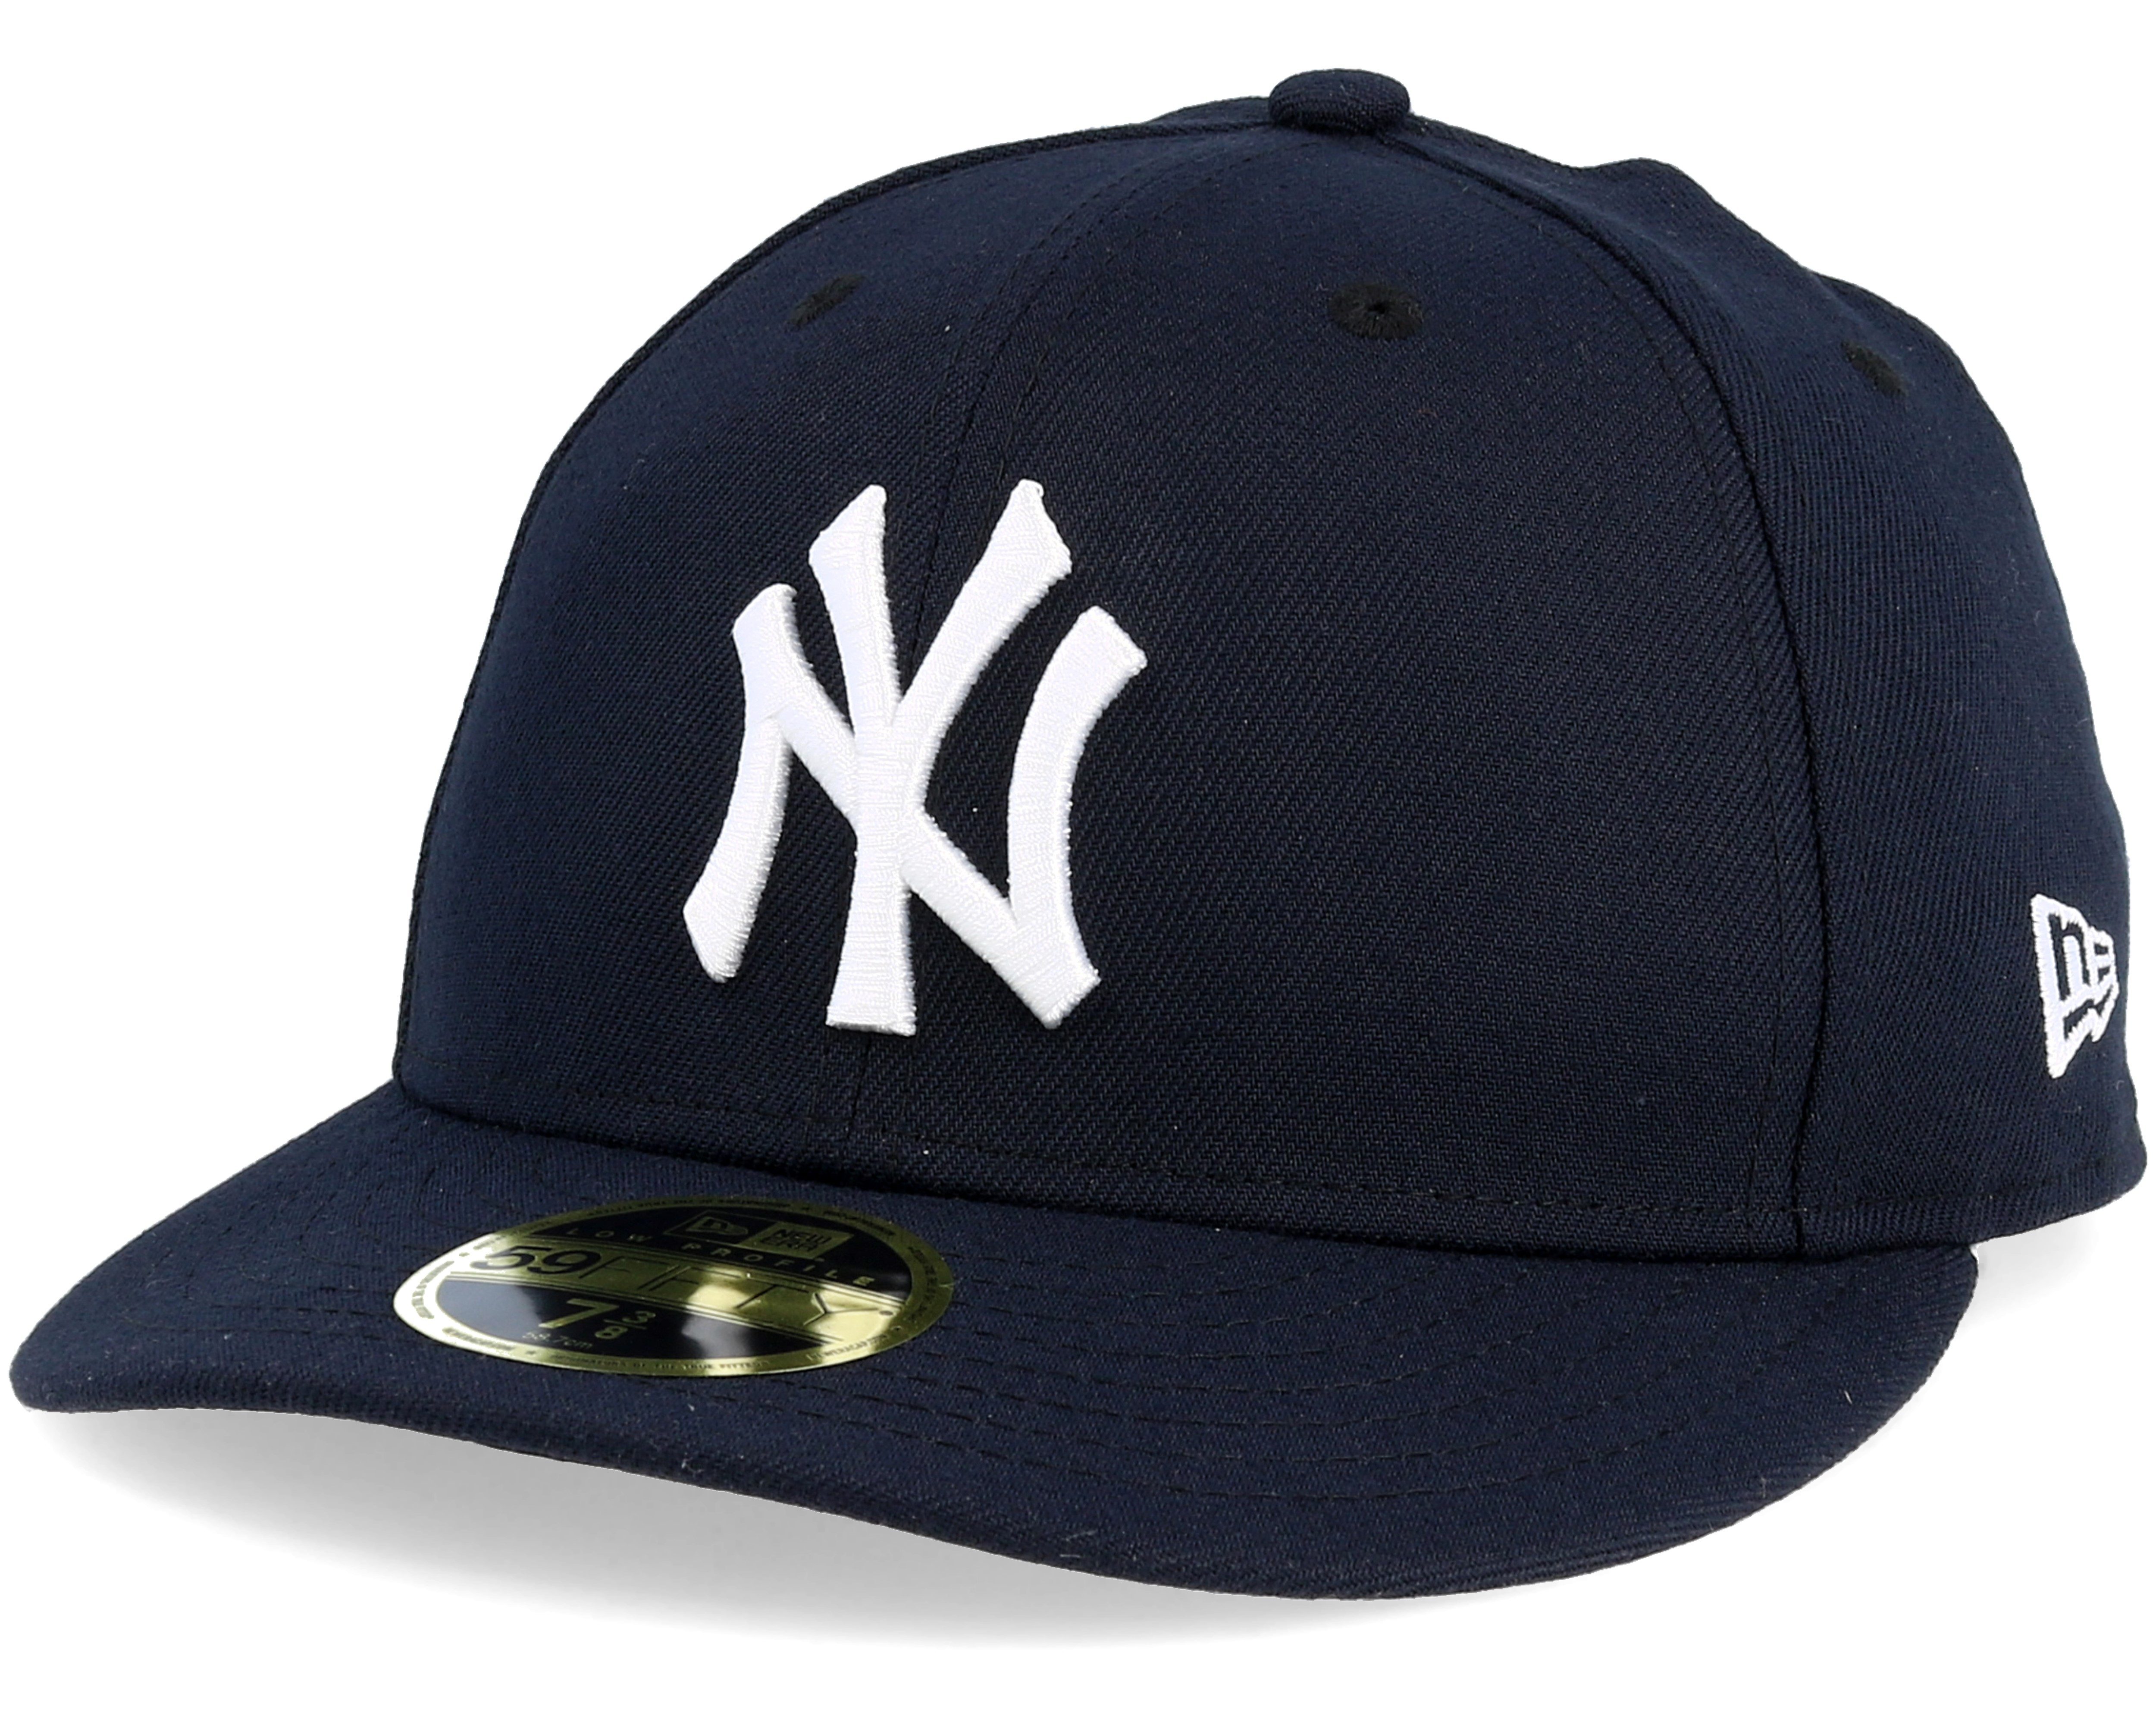 37a4bec155b46f Product information New York Yankees Game Authentic Collection Low Profile  59fifty - New Era